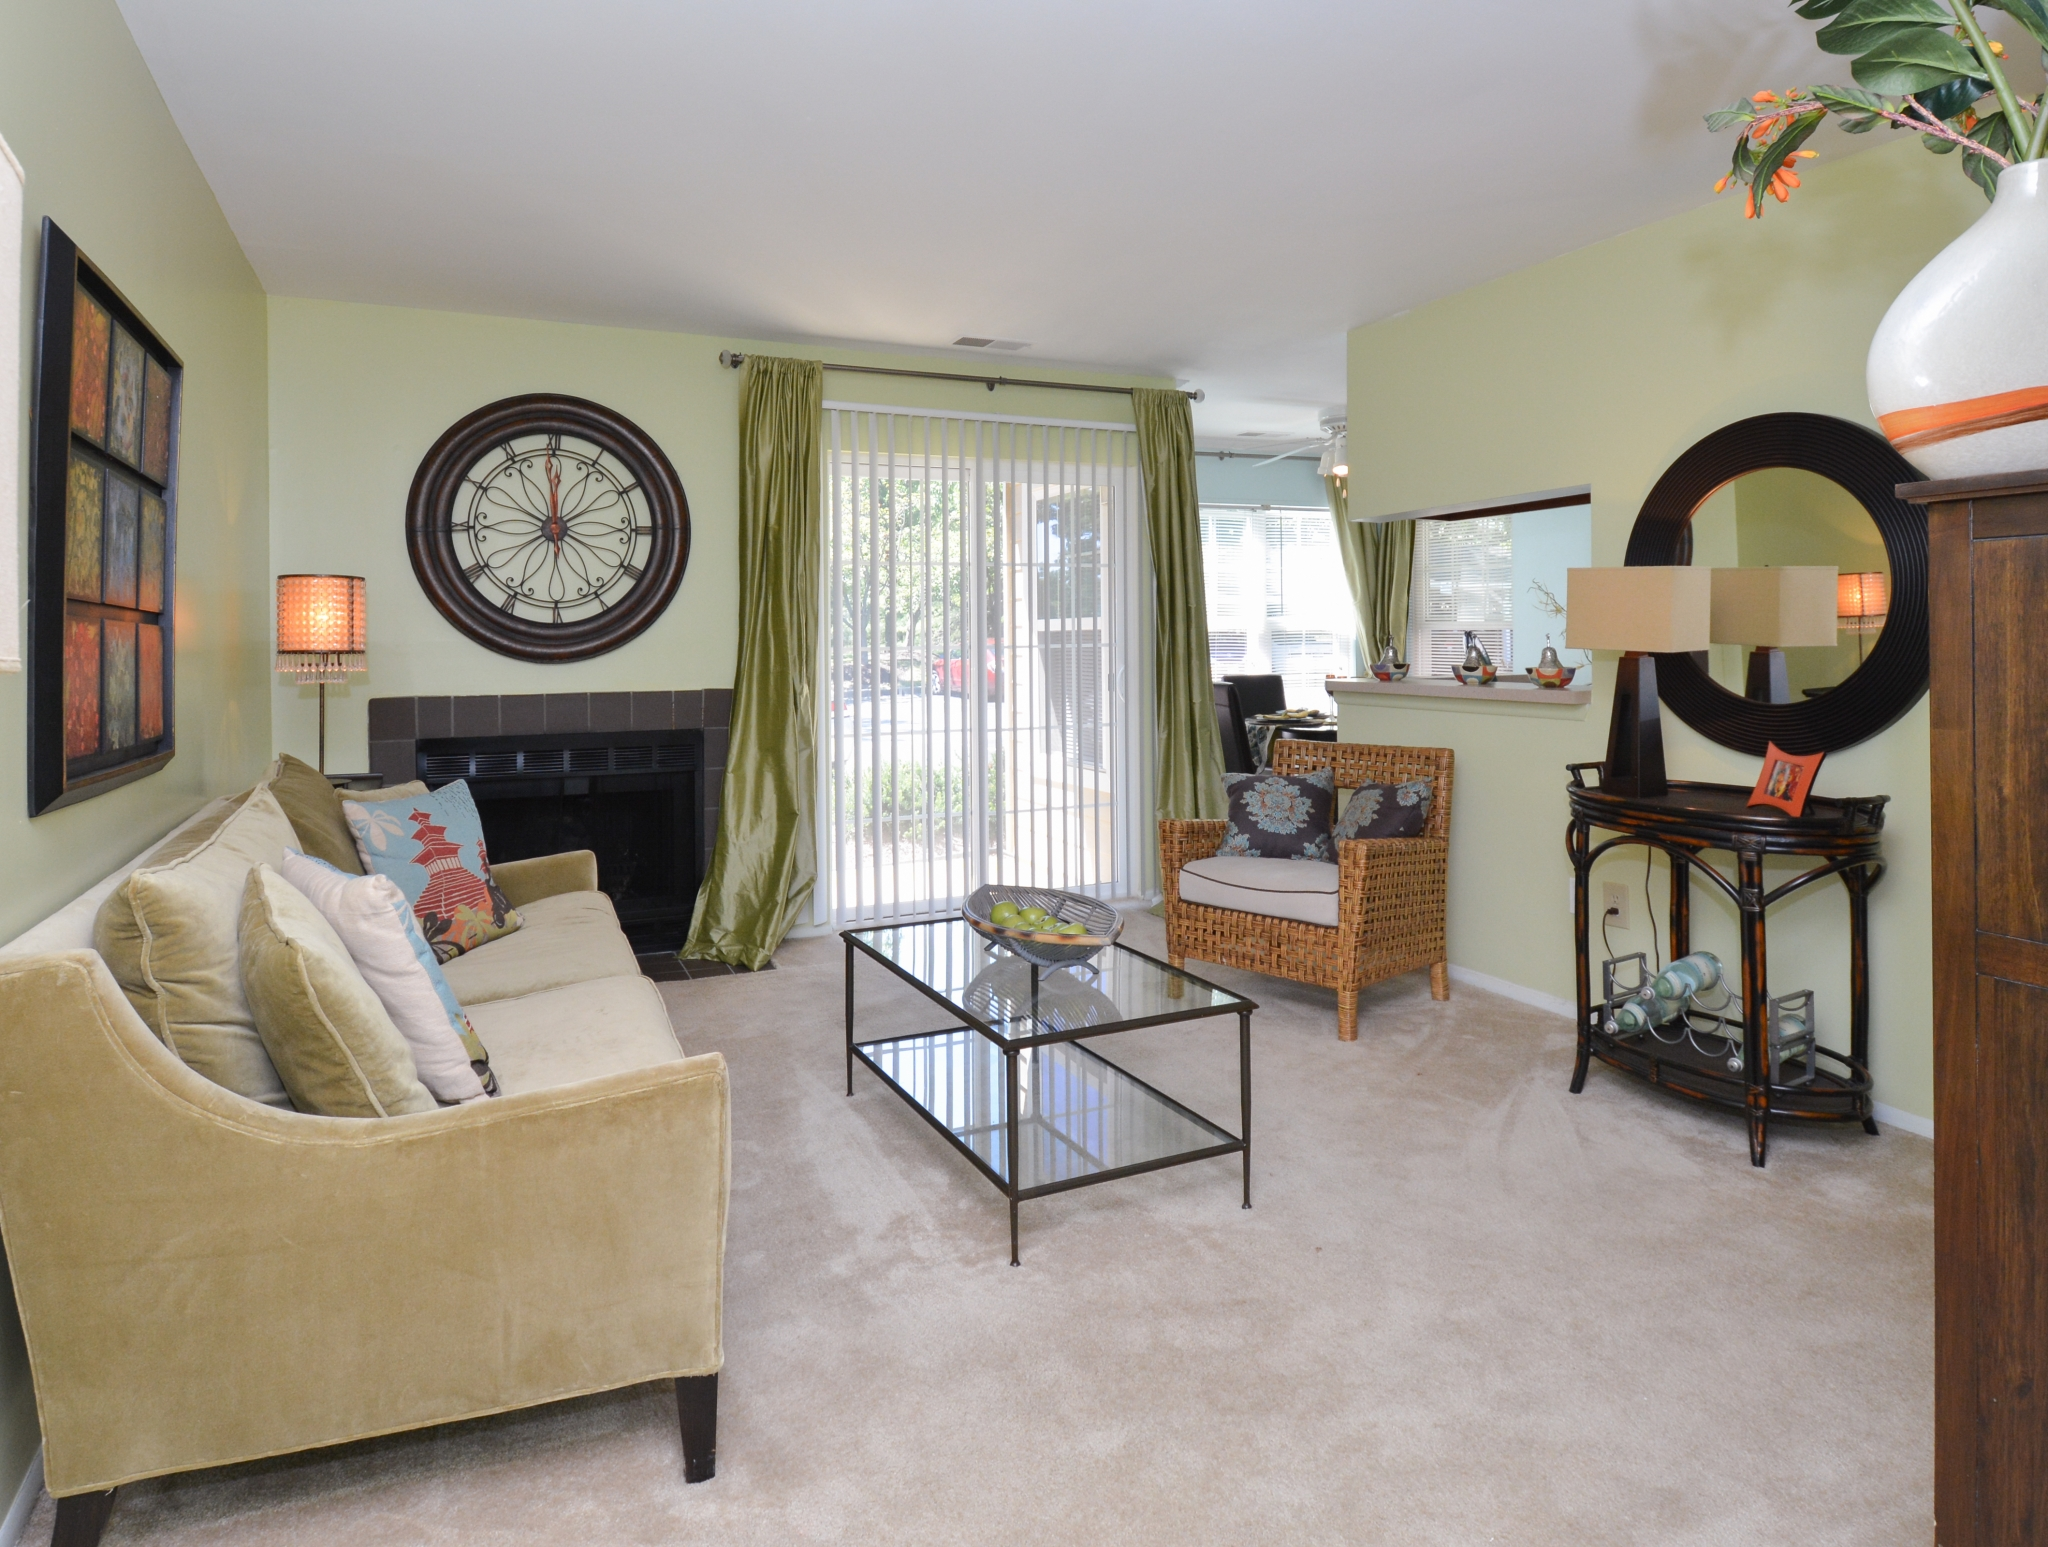 Luxurious Living Room | Apartment Homes in Laurel, MD | Spring House Apartments